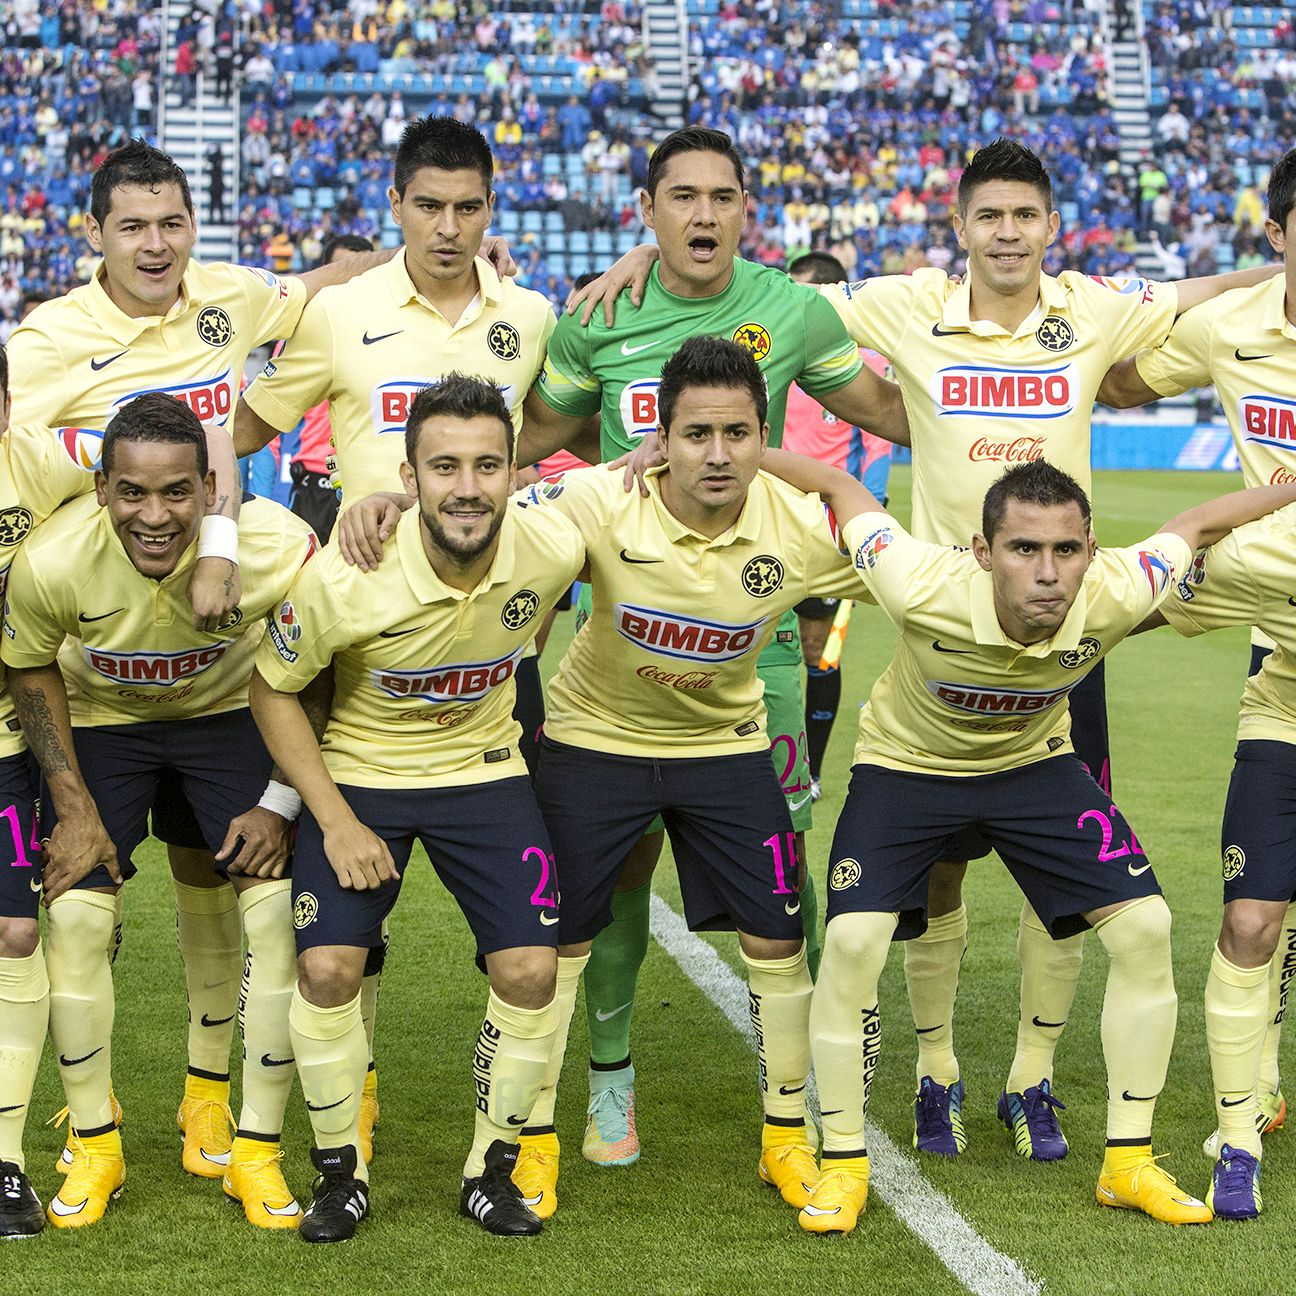 Liga MX leaders Club America return to action two weeks after getting walloped 4-0 at Cruz Azul.